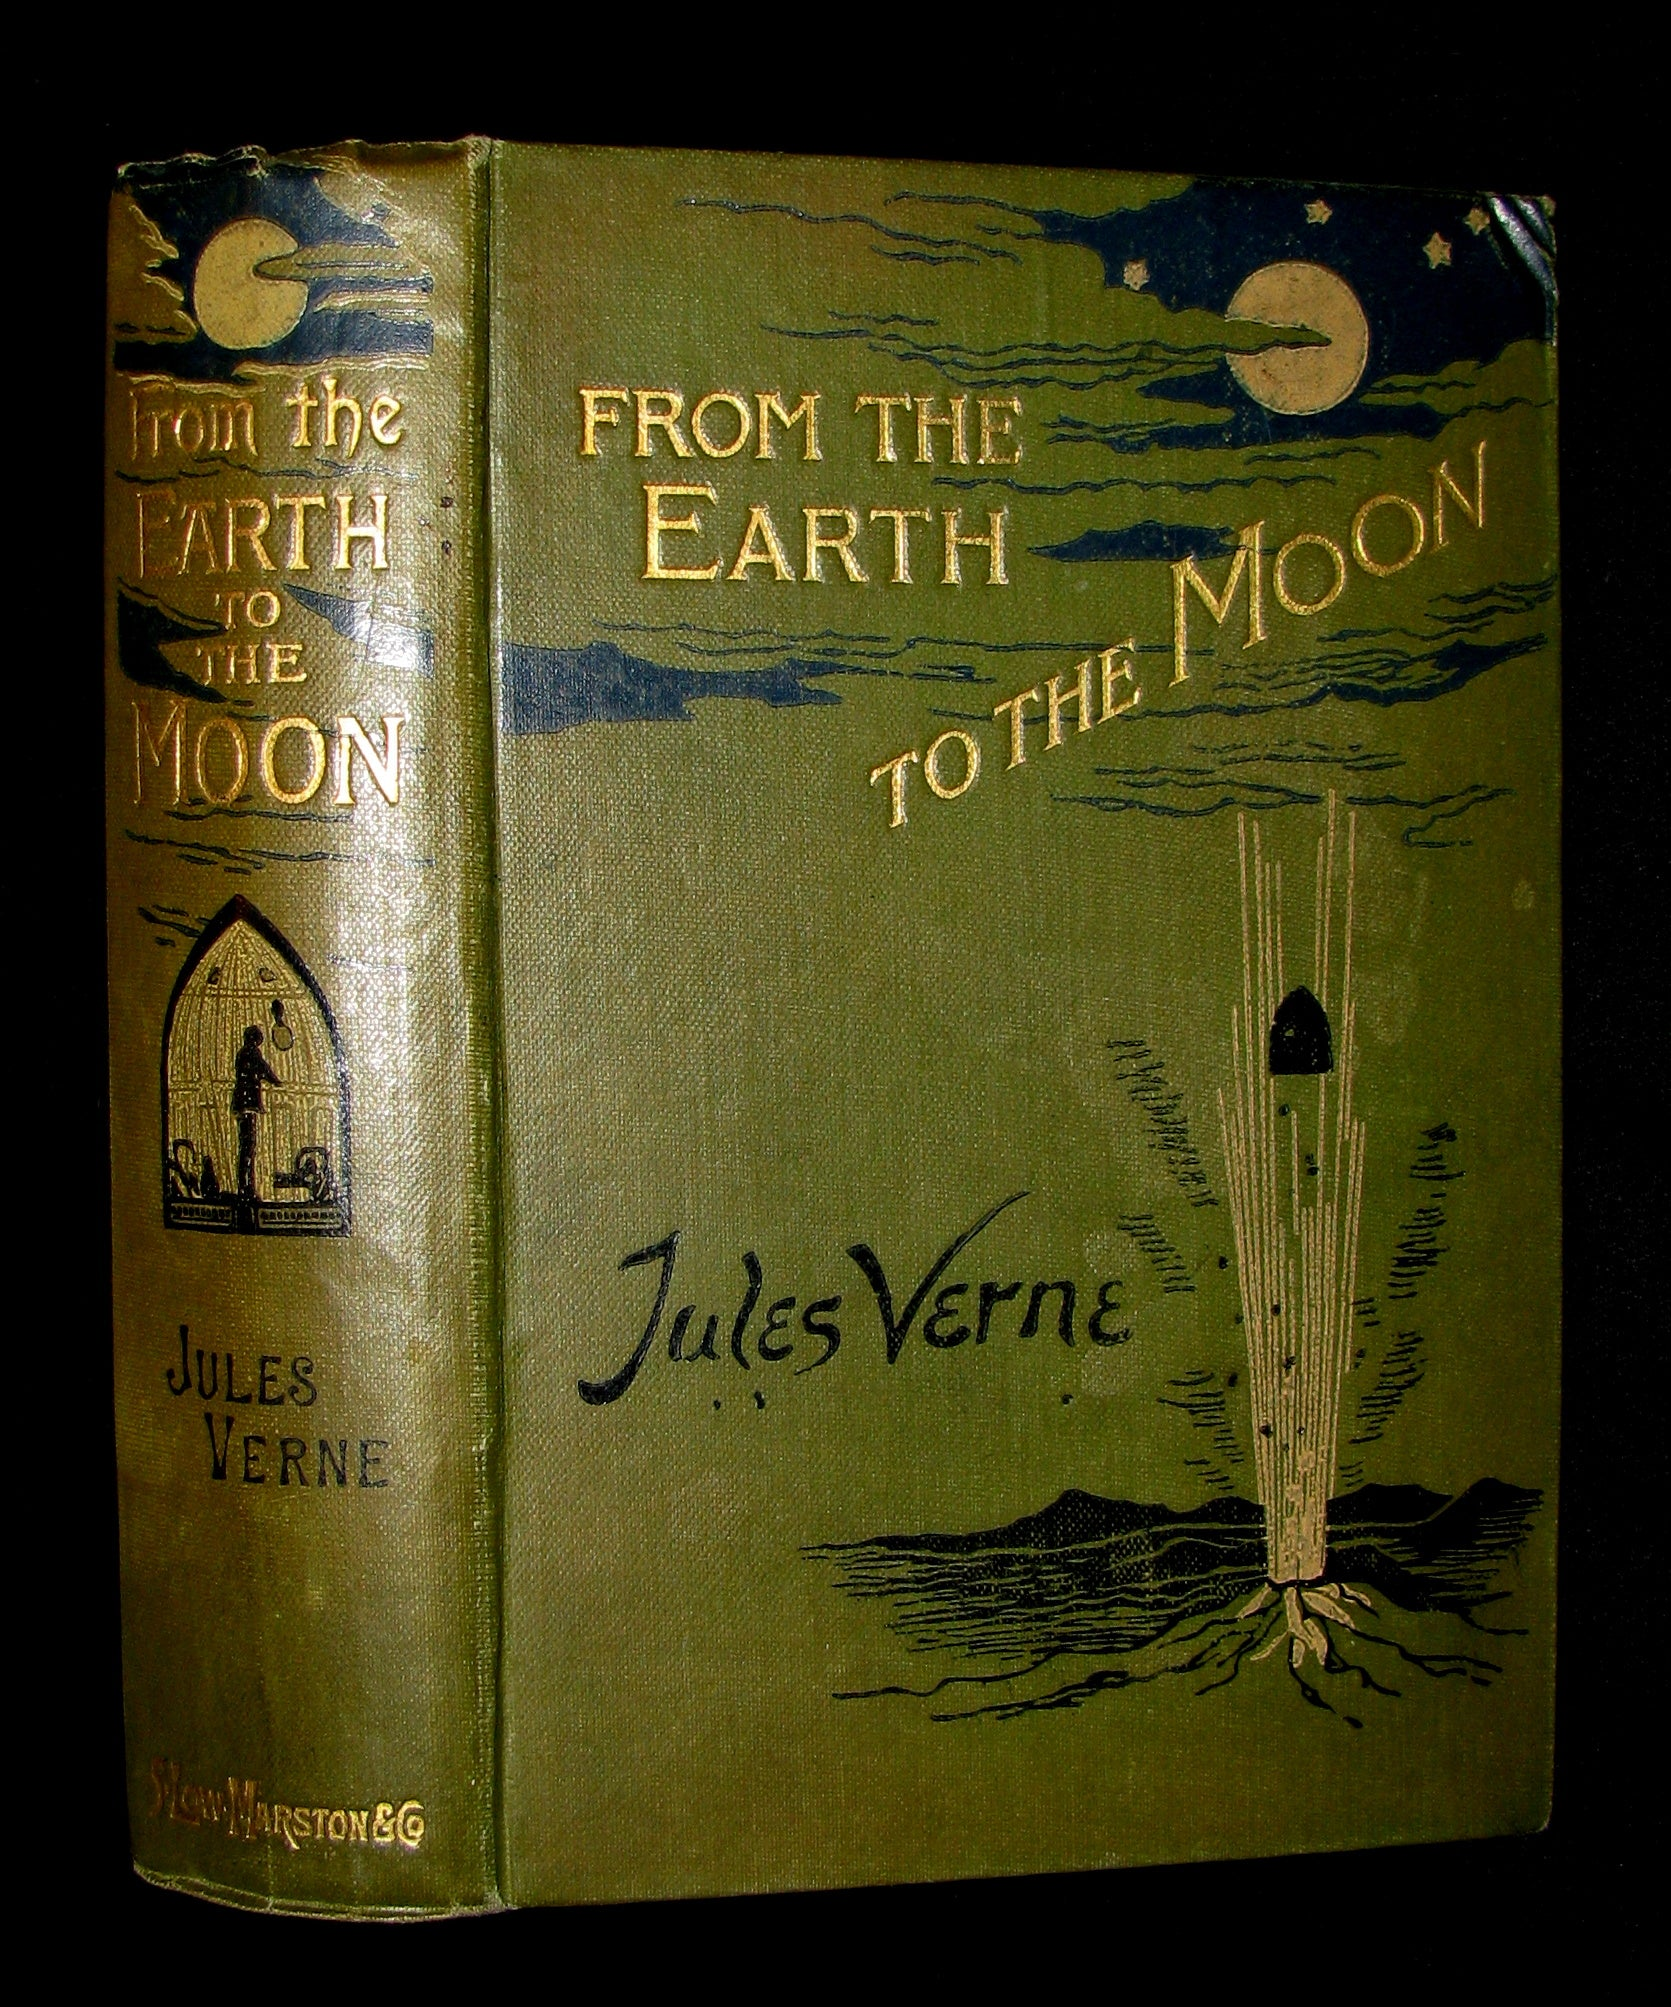 1907 Rare Book - JULES VERNE - From the Earth to the Moon, Direct in 97 hours 20 minutes